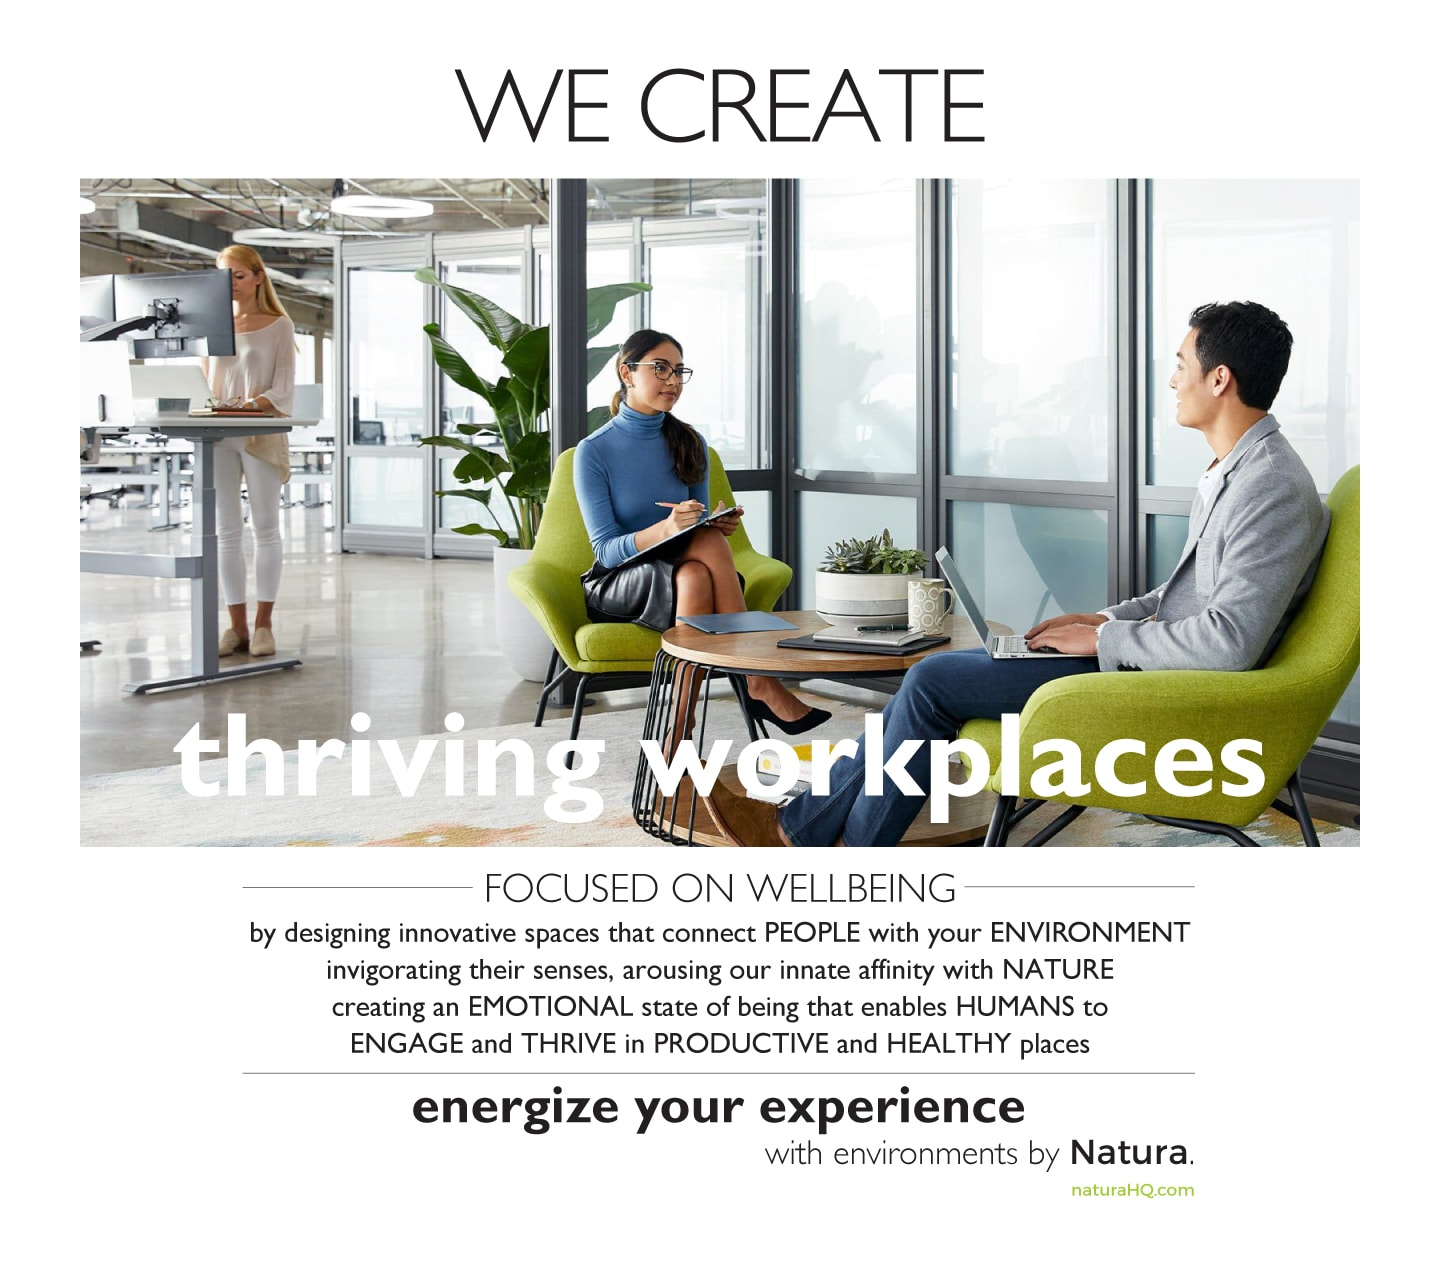 Healthy Workplaces where People Thrive!